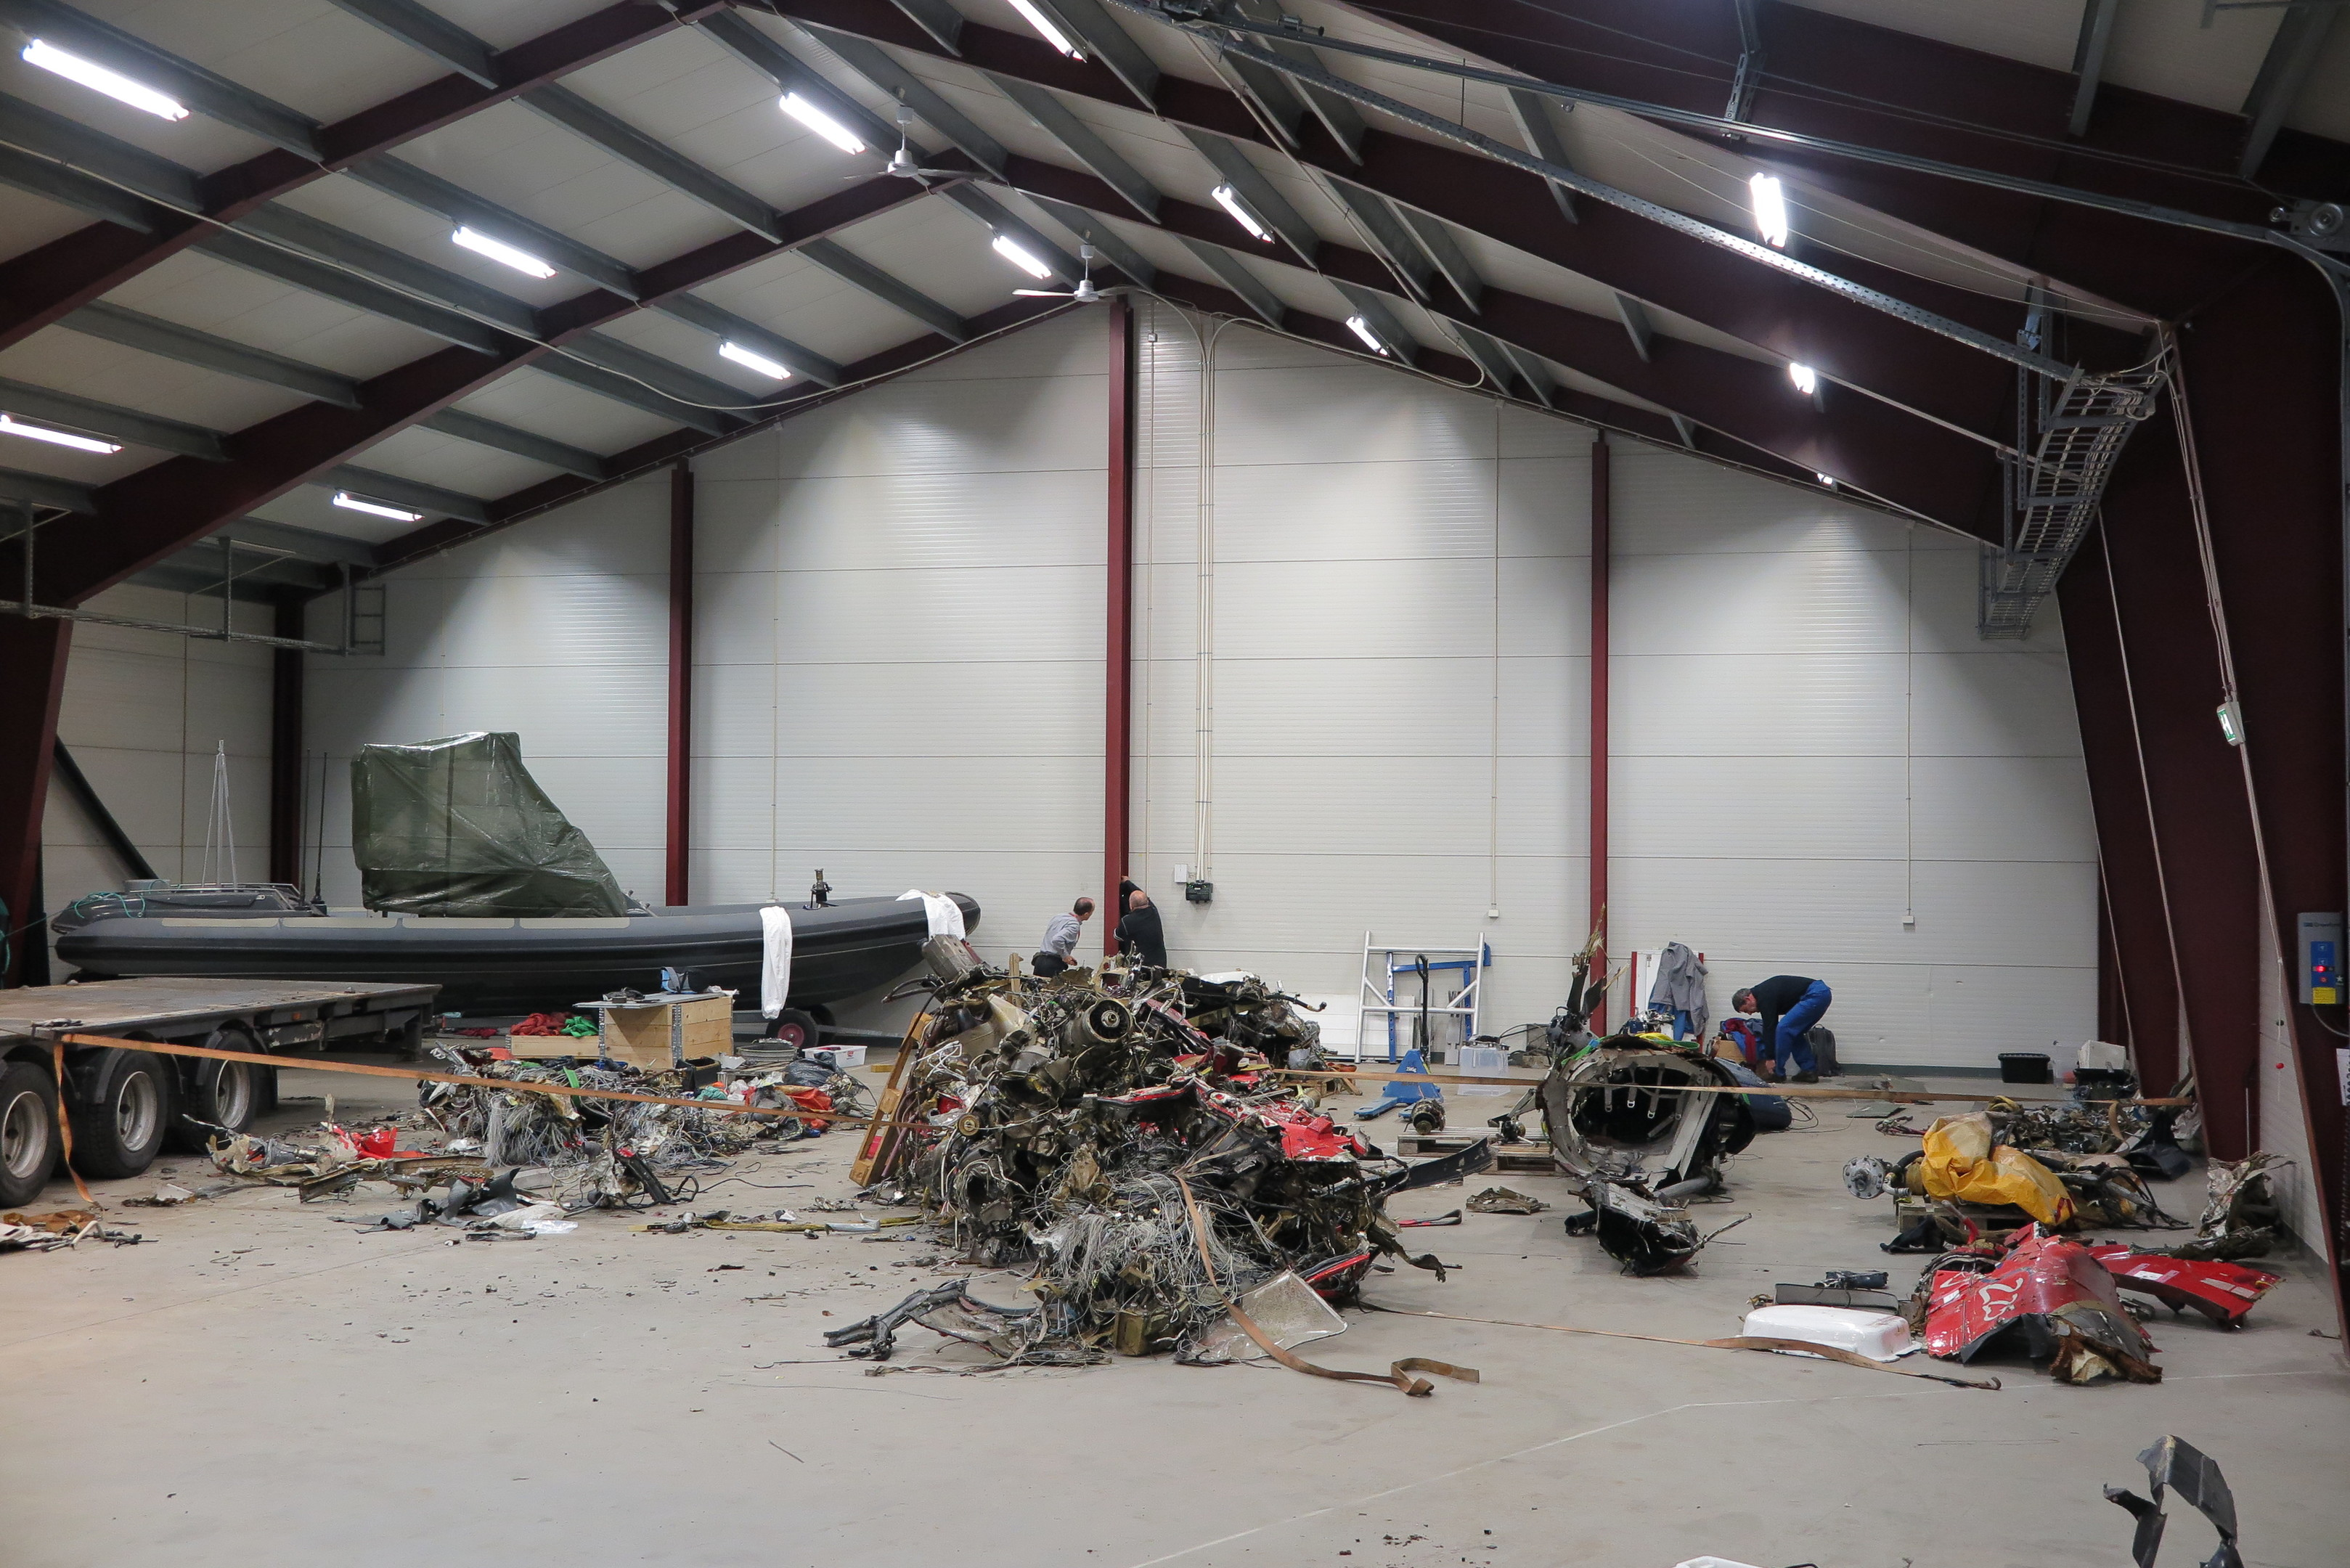 Wreckage from the helicopter in a naval base in Norway.